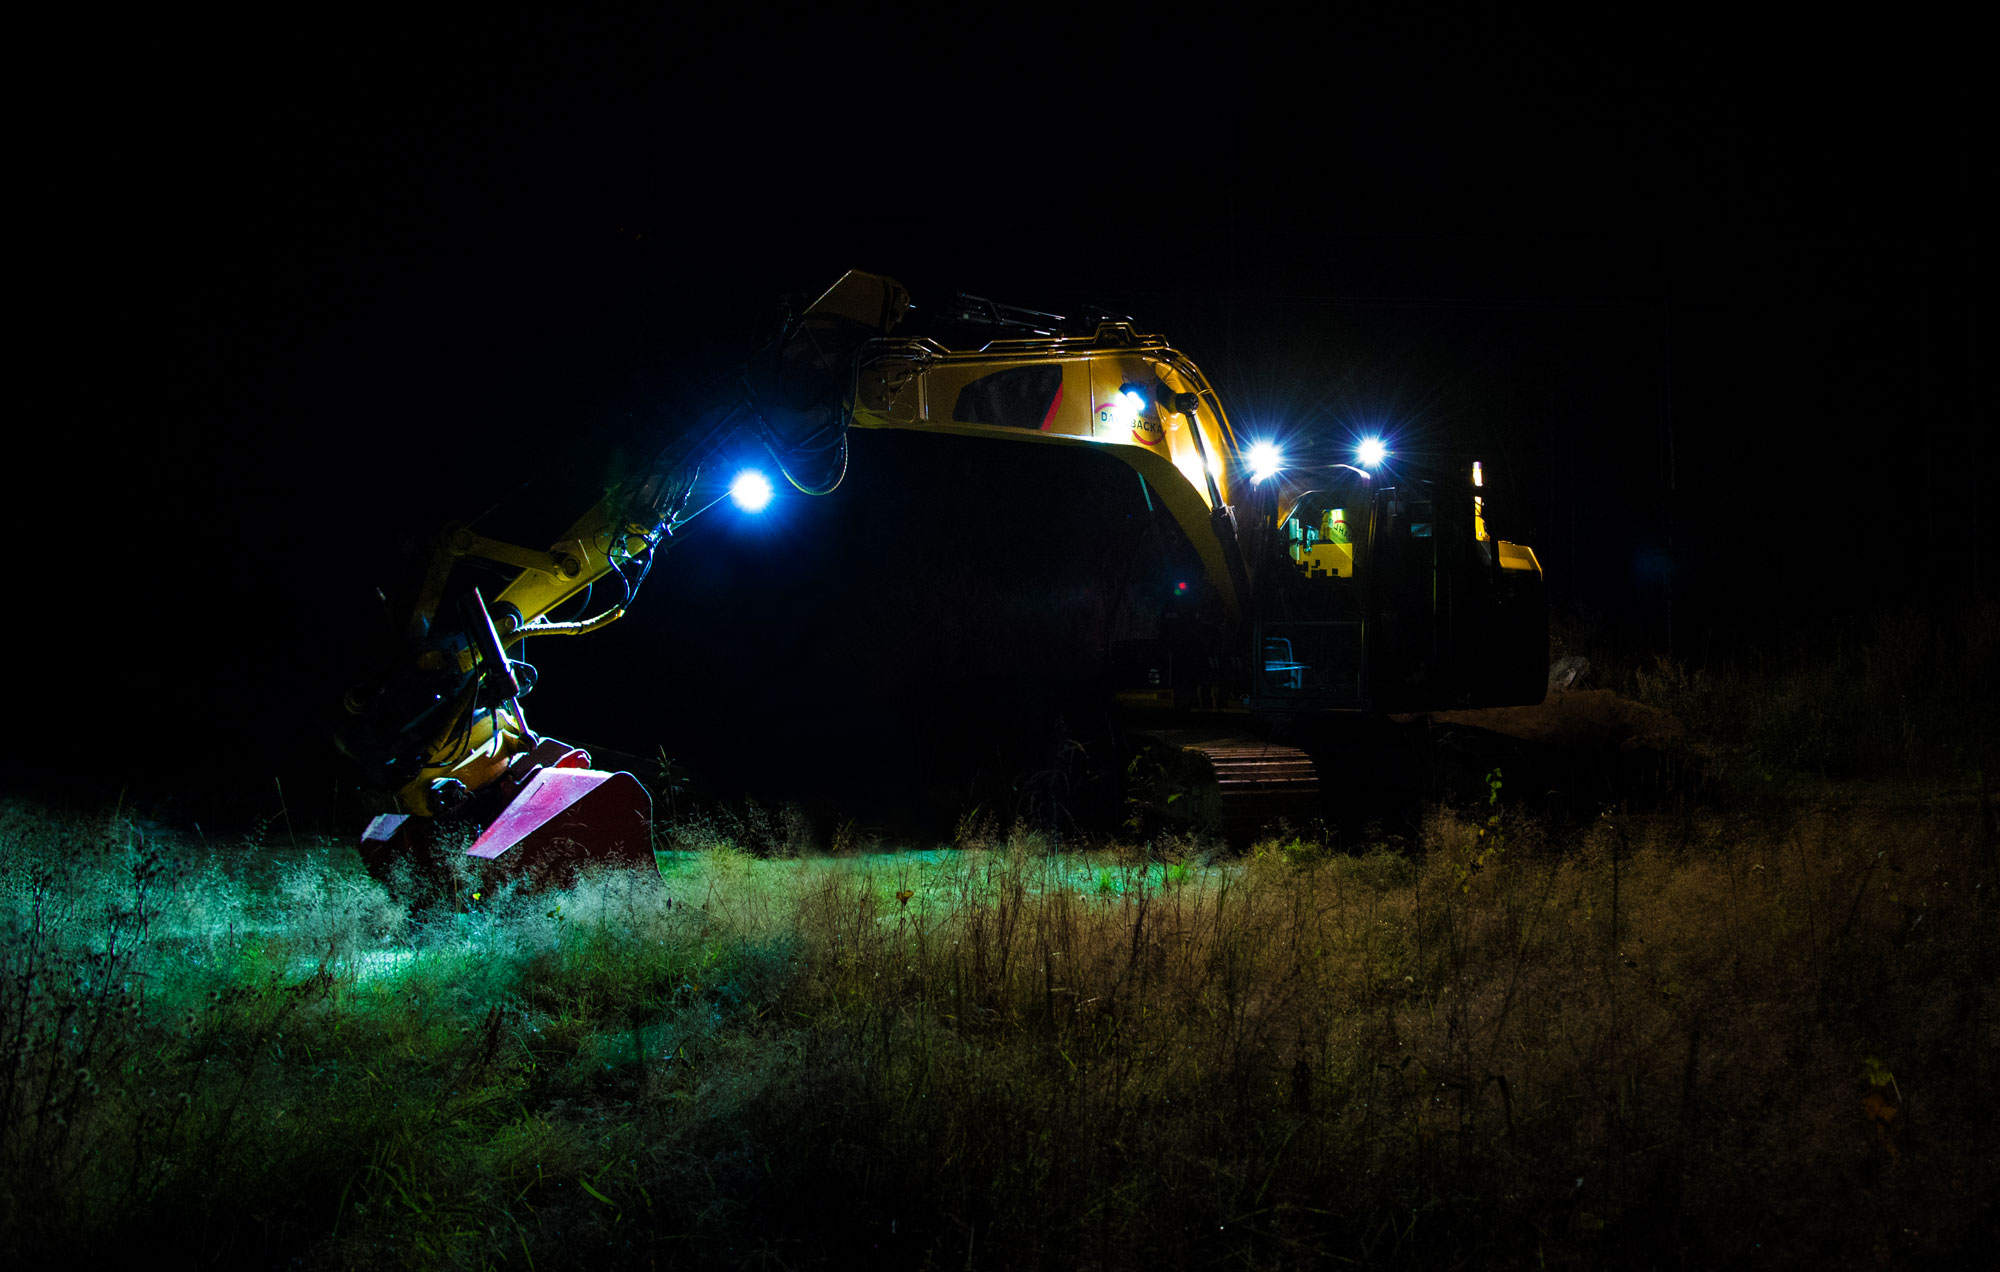 Yellow Excavator Digger equipped with LED Nordic Lights